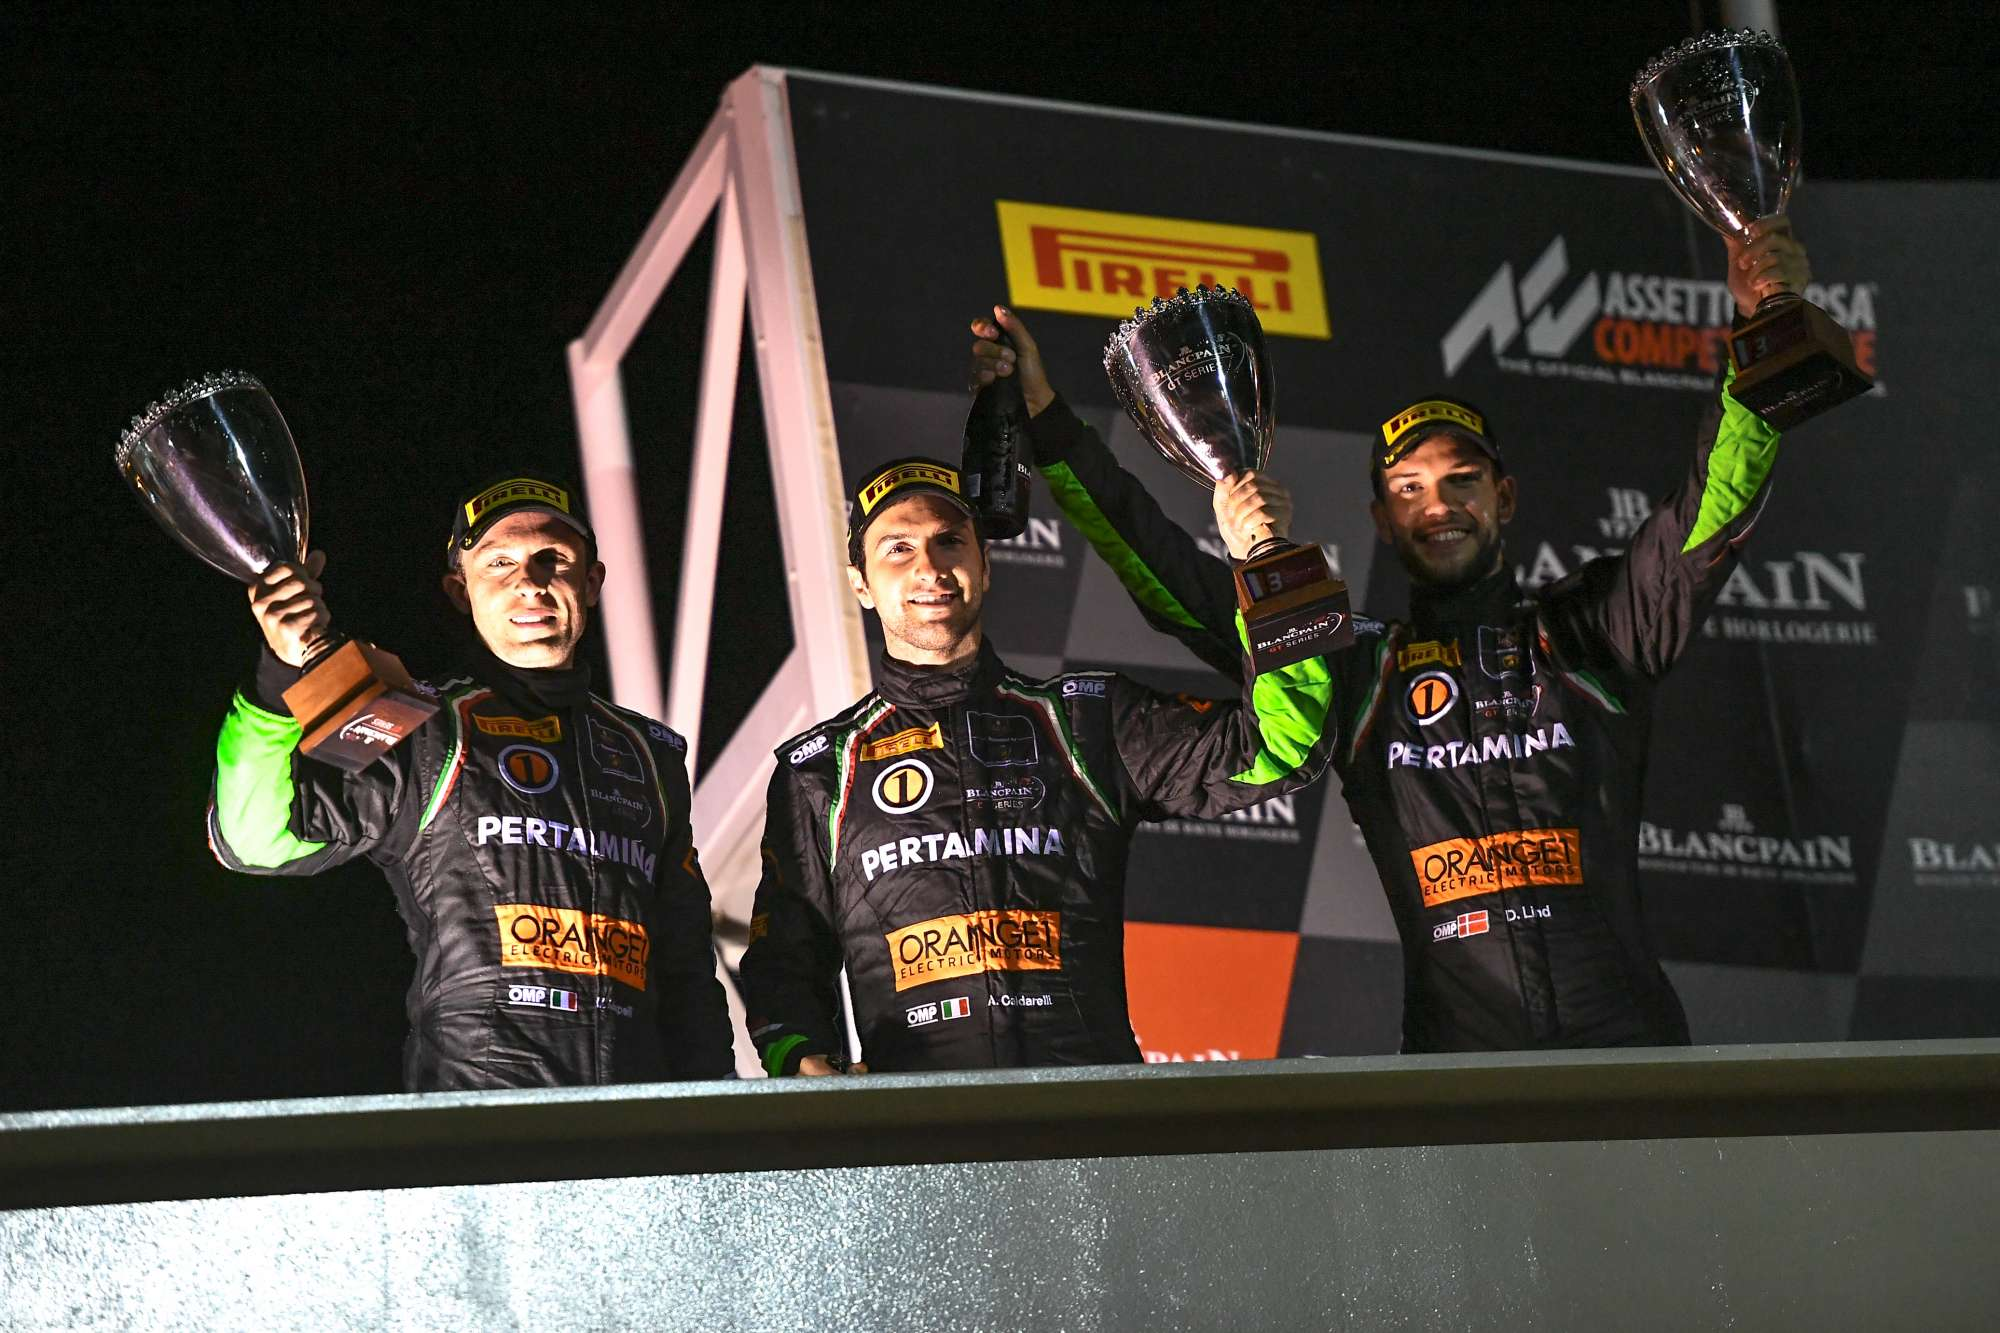 Poker Of Podiums for Orange1 FFF Racing Team at Paul Ricard 1000 Km